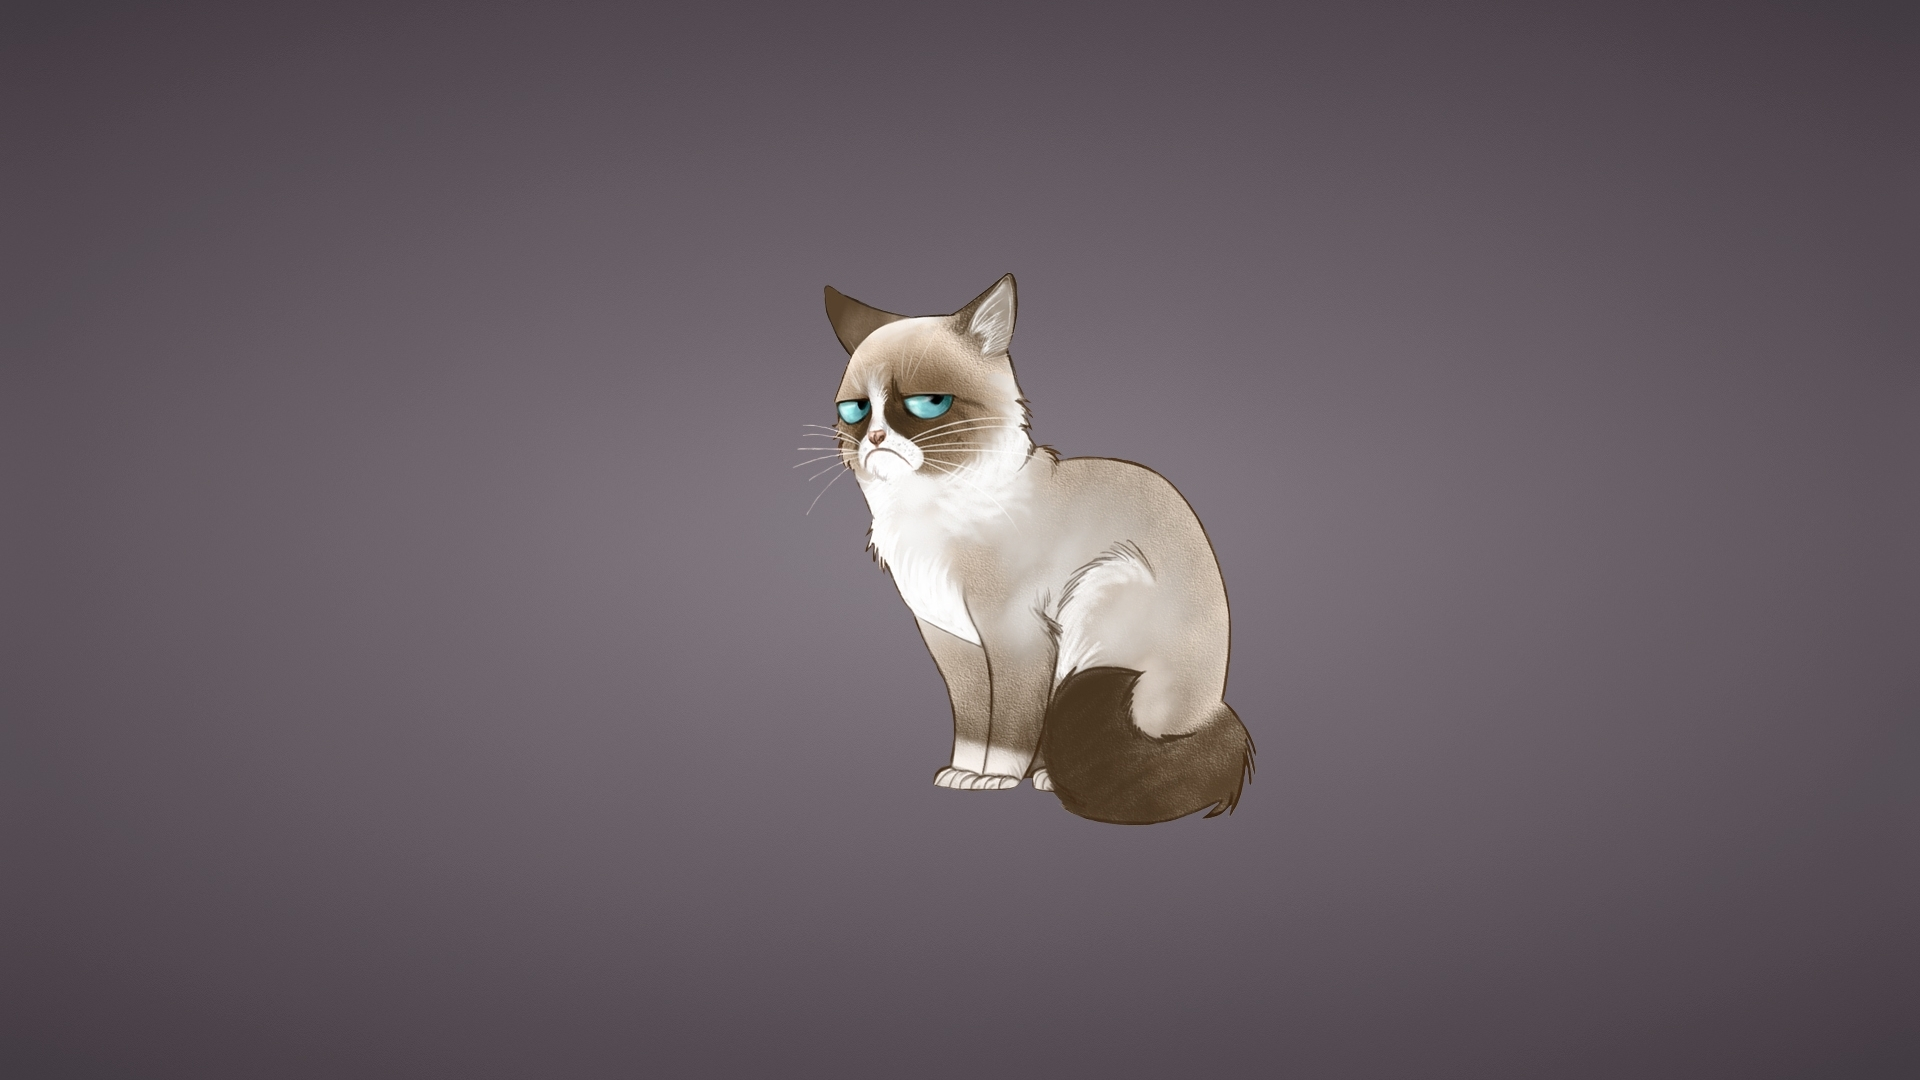 grumpy cat hd wallpapers - photo #8